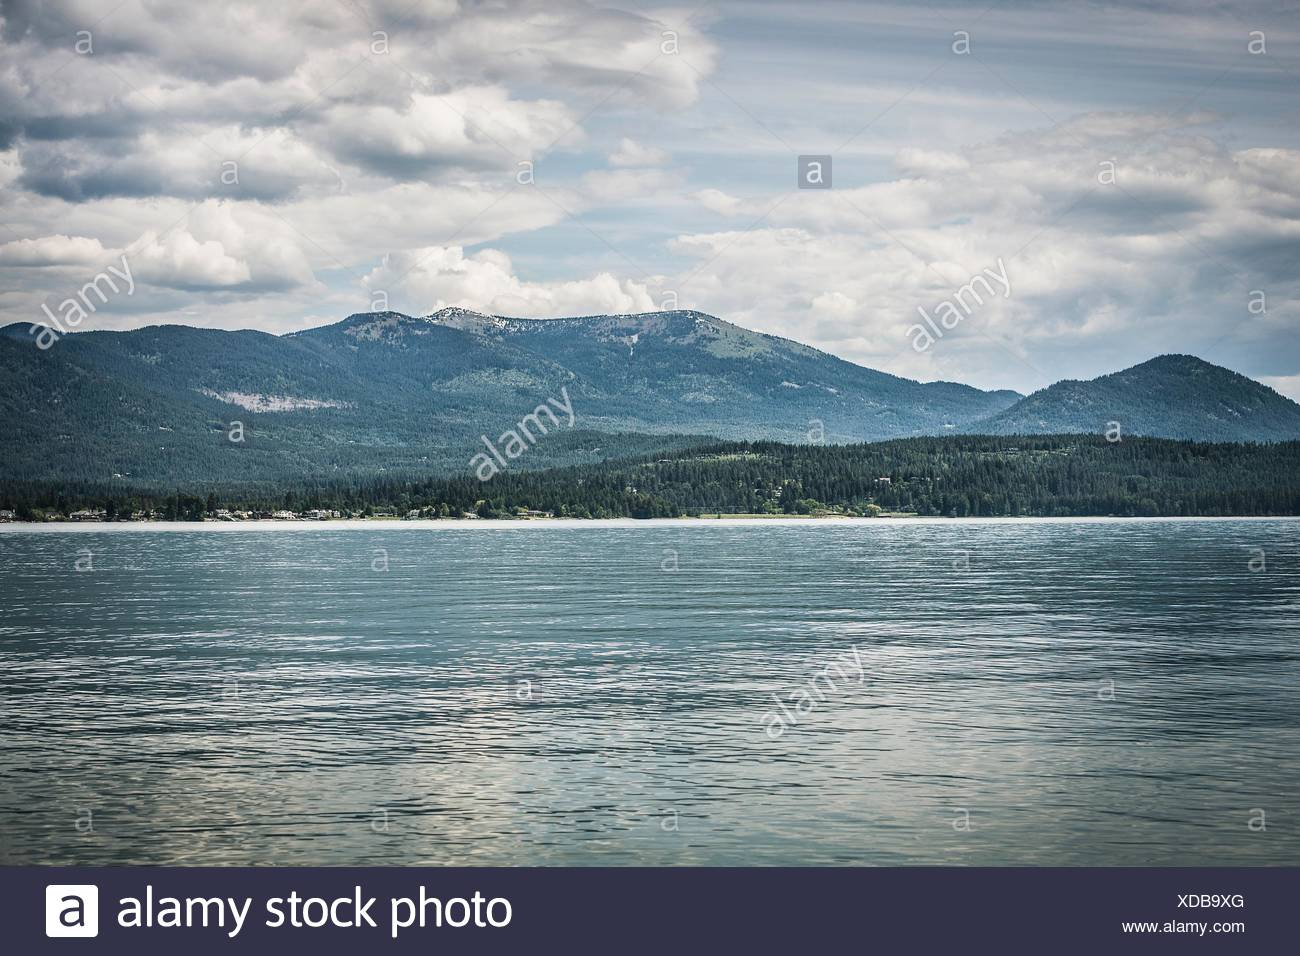 View of lake and mountain, Sandpoint, Idaho, USA - Stock Image